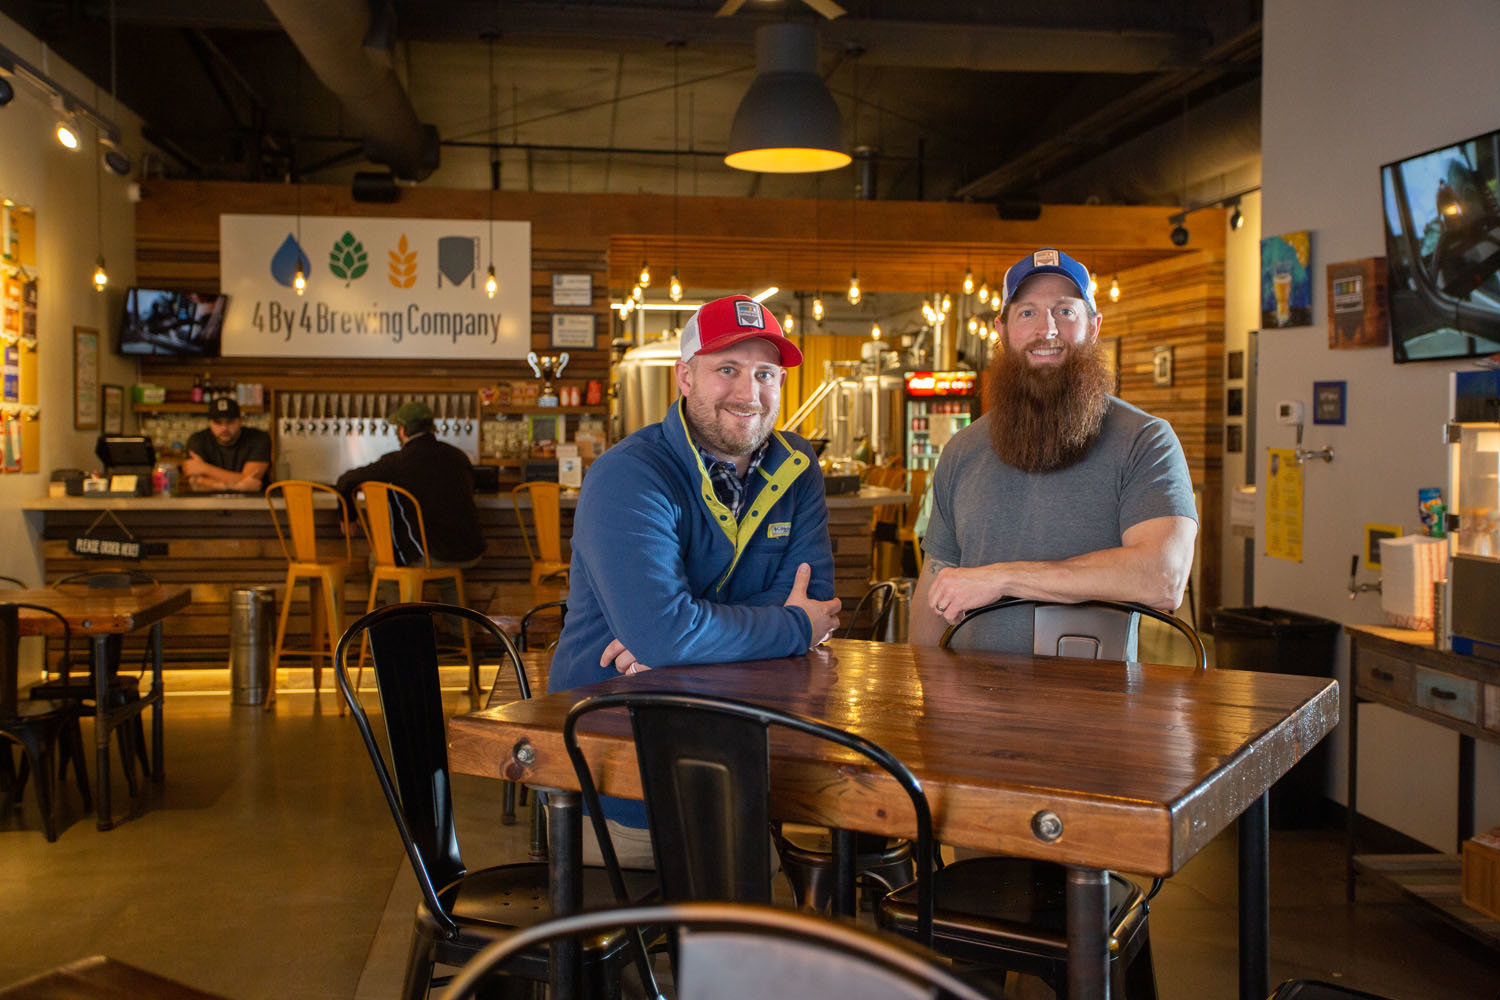 BREWING BUSINESS: Derek Shimeall, left, Chris Shaffer and the 4 By 4 Brewing Co. ownership group led the microbrewery to $800,000 in revenue last year.